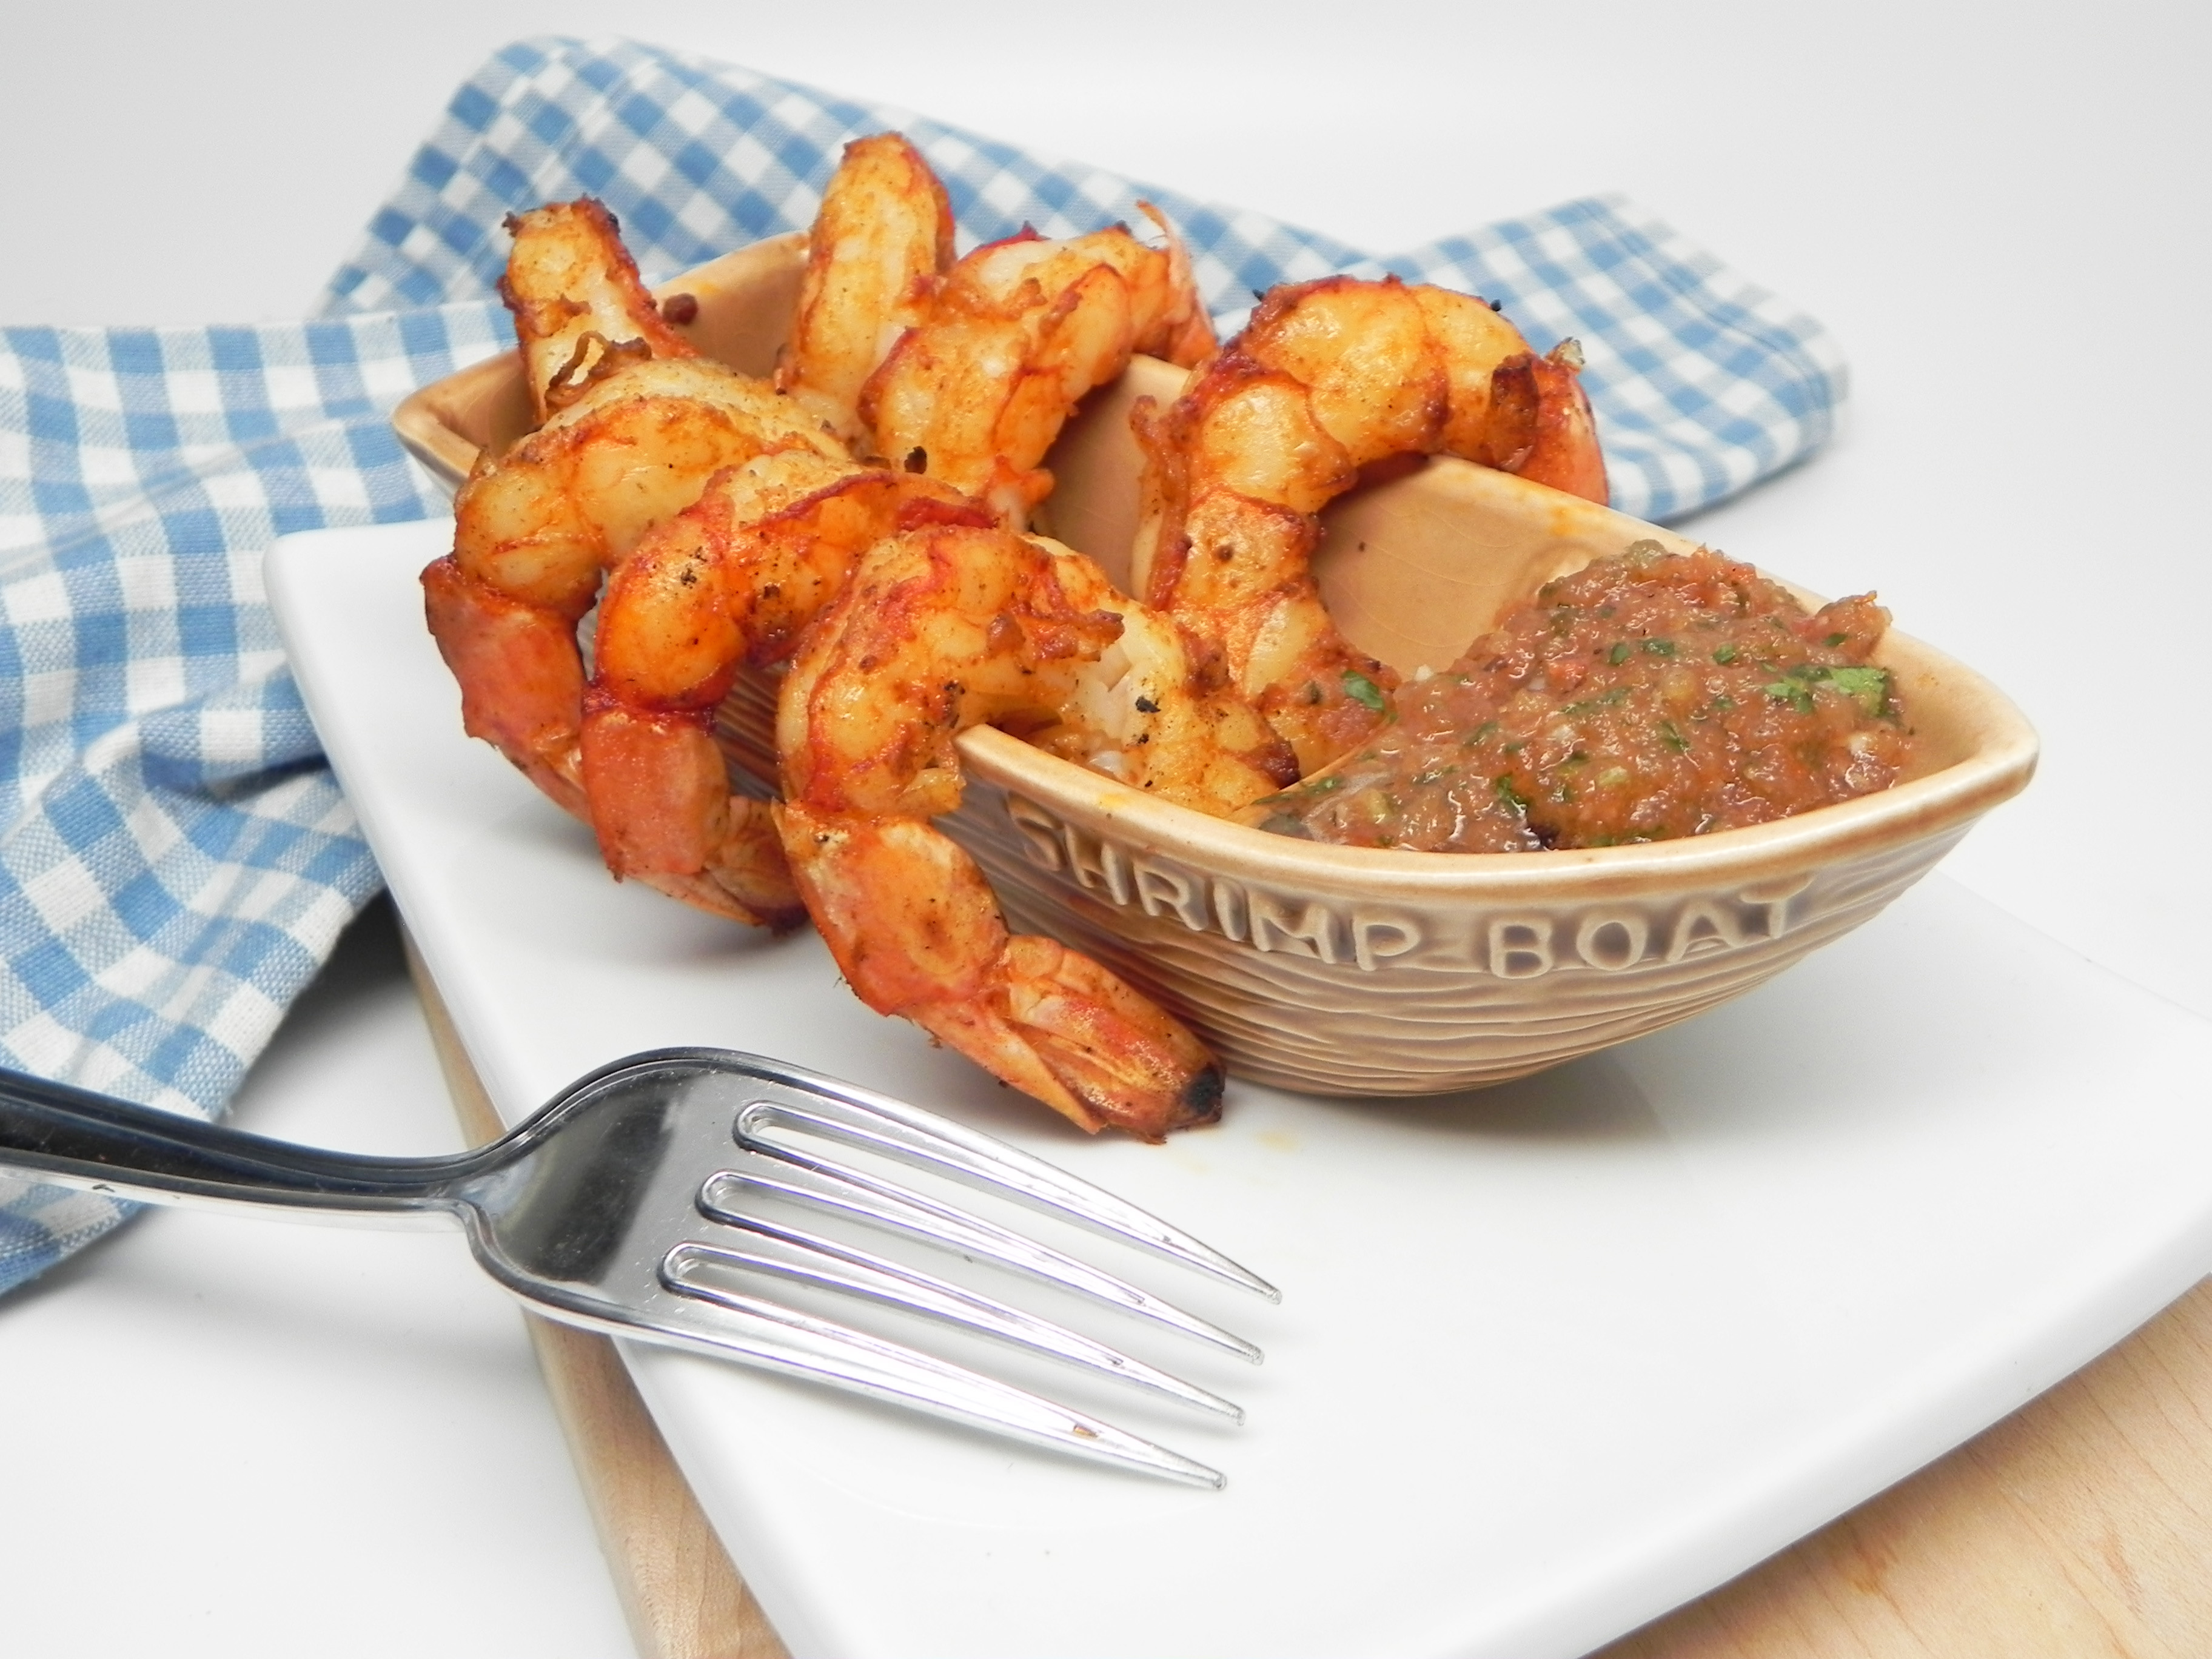 """Seasoned jumbo shrimp, grilled, and served with a homemade grilled salsa. """"I serve this as a main dish but it would make a great appetizer as well,"""" says Soup Loving Nicole."""